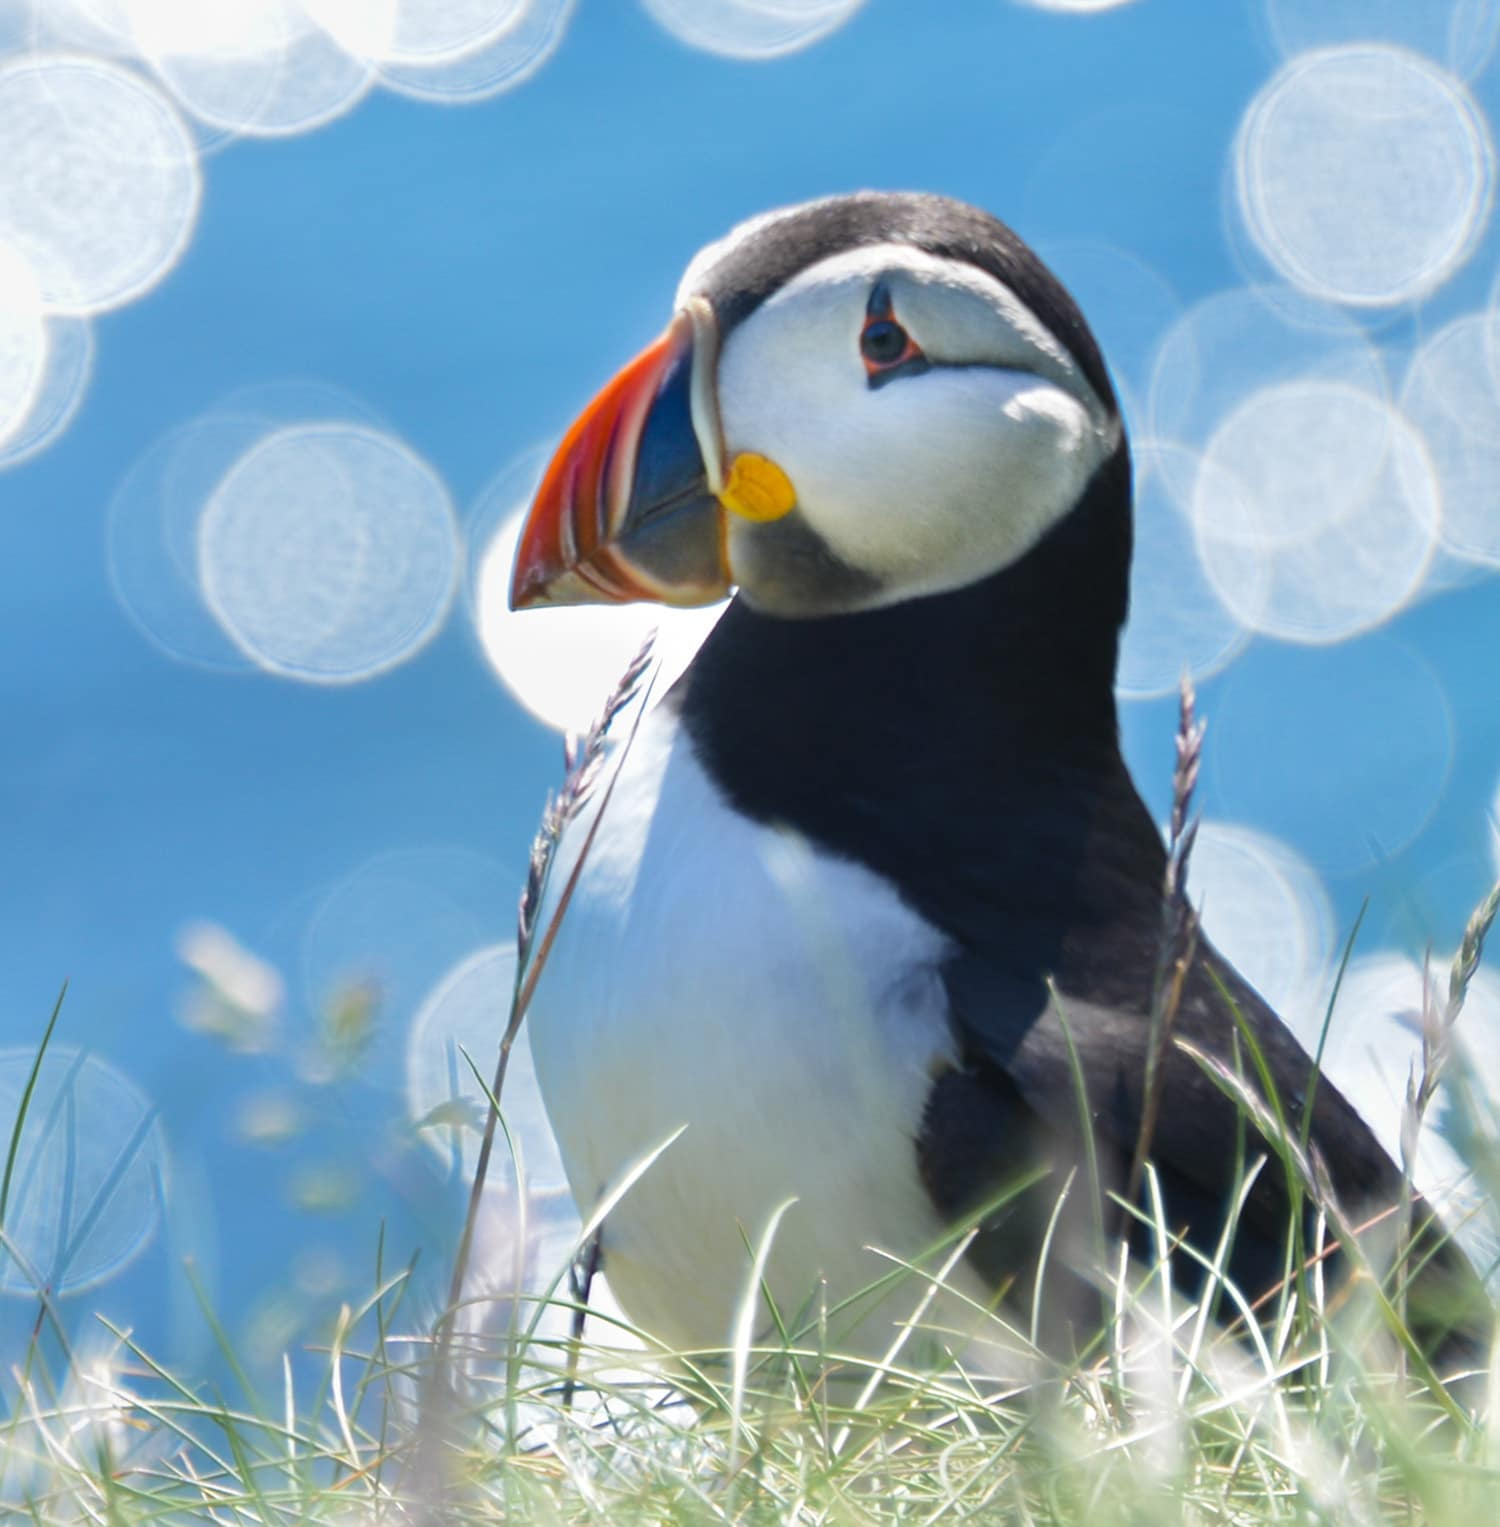 An image of a puffin, one of the many wildlife encounters that take place on a private tour of Scotland